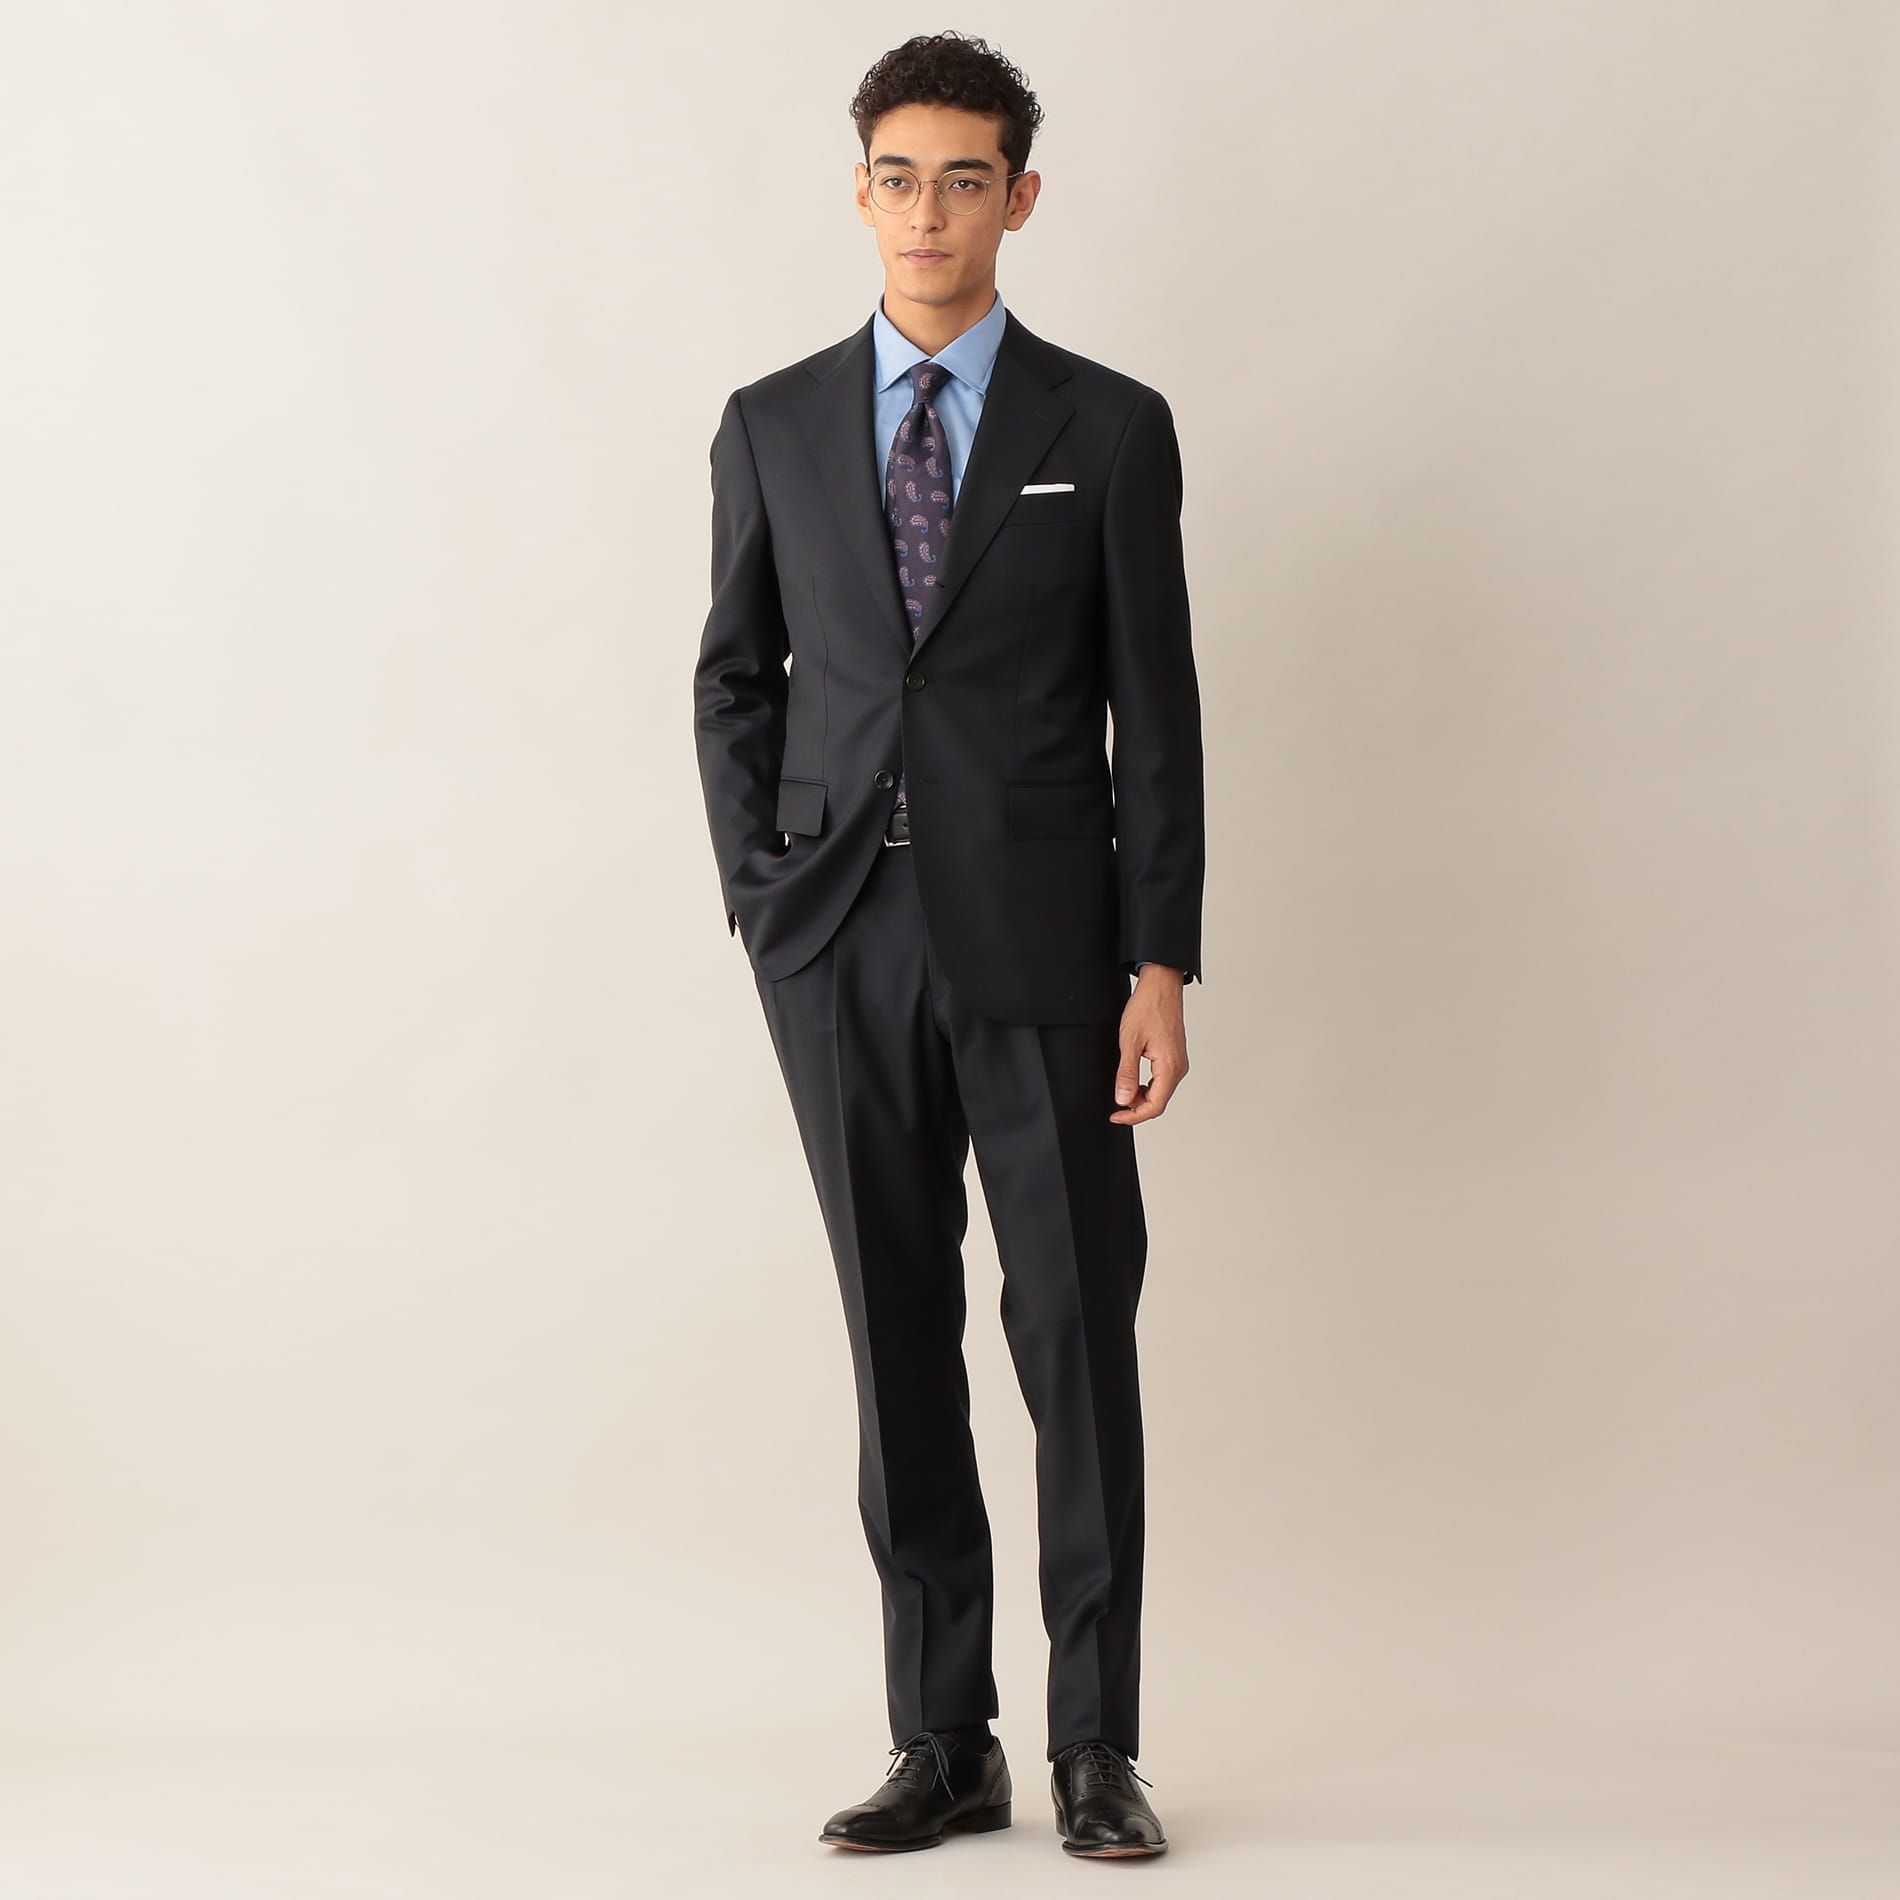 【Vitale Barberis Canonico】【NEW MODEL】 「SUPER SONIC」スーツ